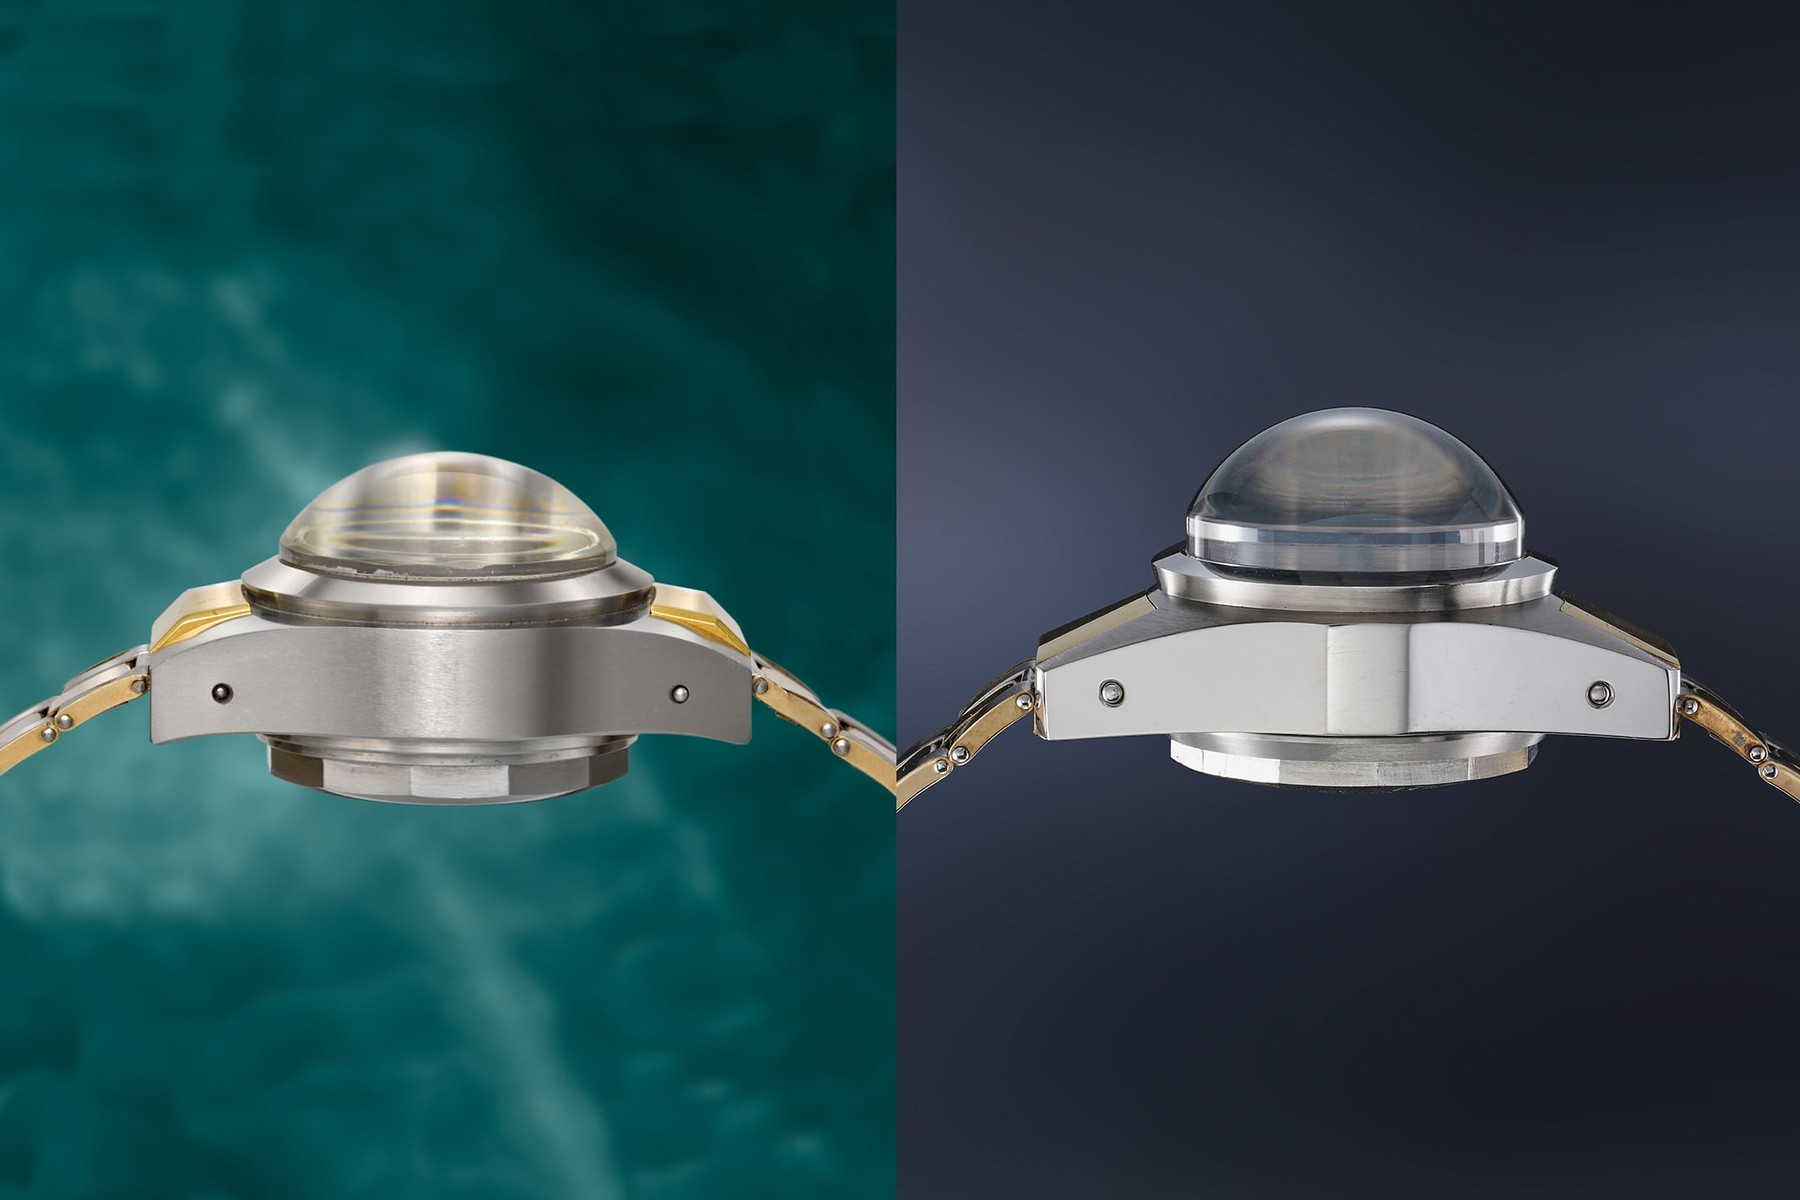 Rolex Deep Sea Specials No. 1 and No. 35 side by side